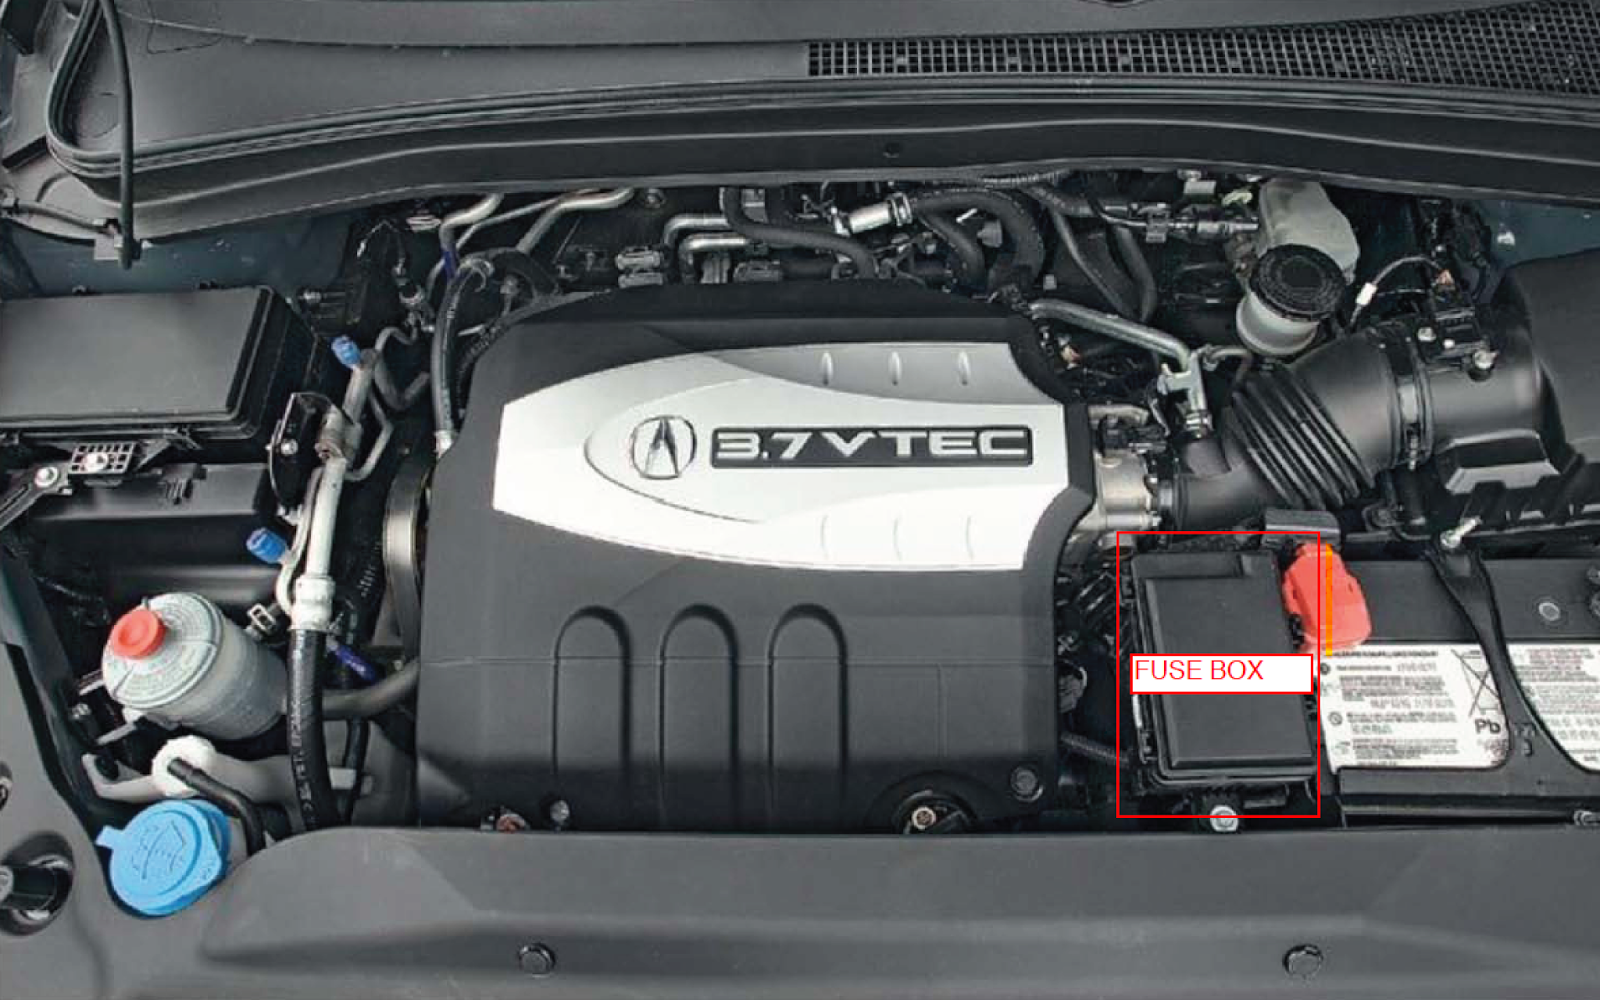 hight resolution of 2007 mdx engine fuse box identified in red